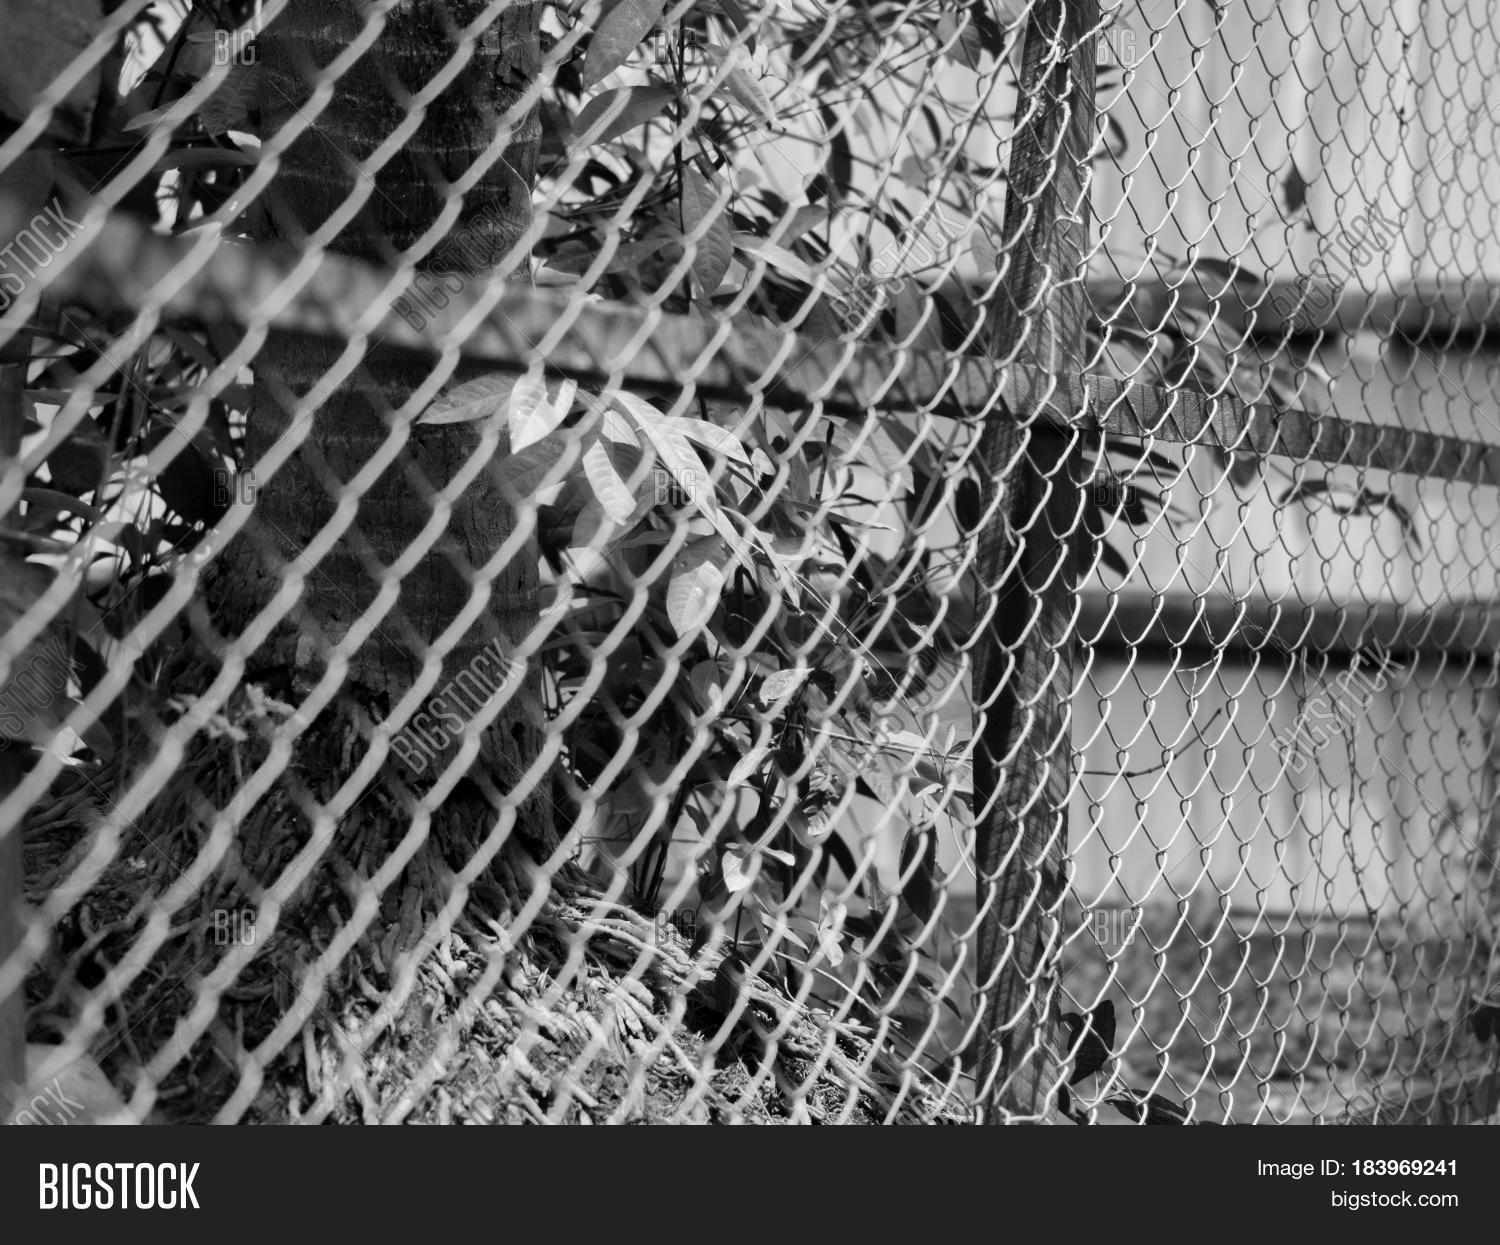 black and white photo of chainlink fence also referred to as wire netting